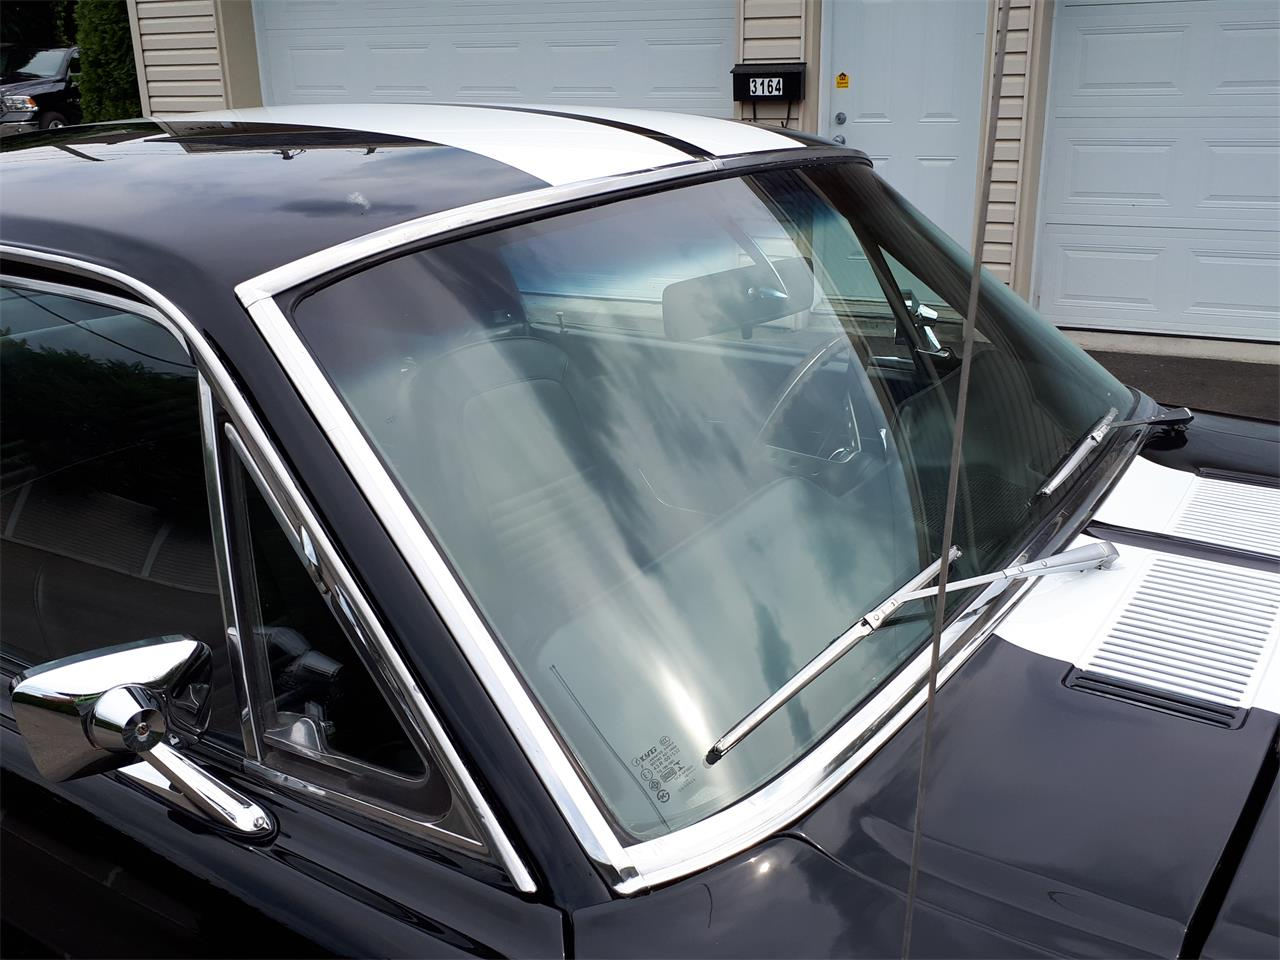 Large Picture of 1967 Ford Mustang located in Laval Quebec - $57,000.00 - QH2P